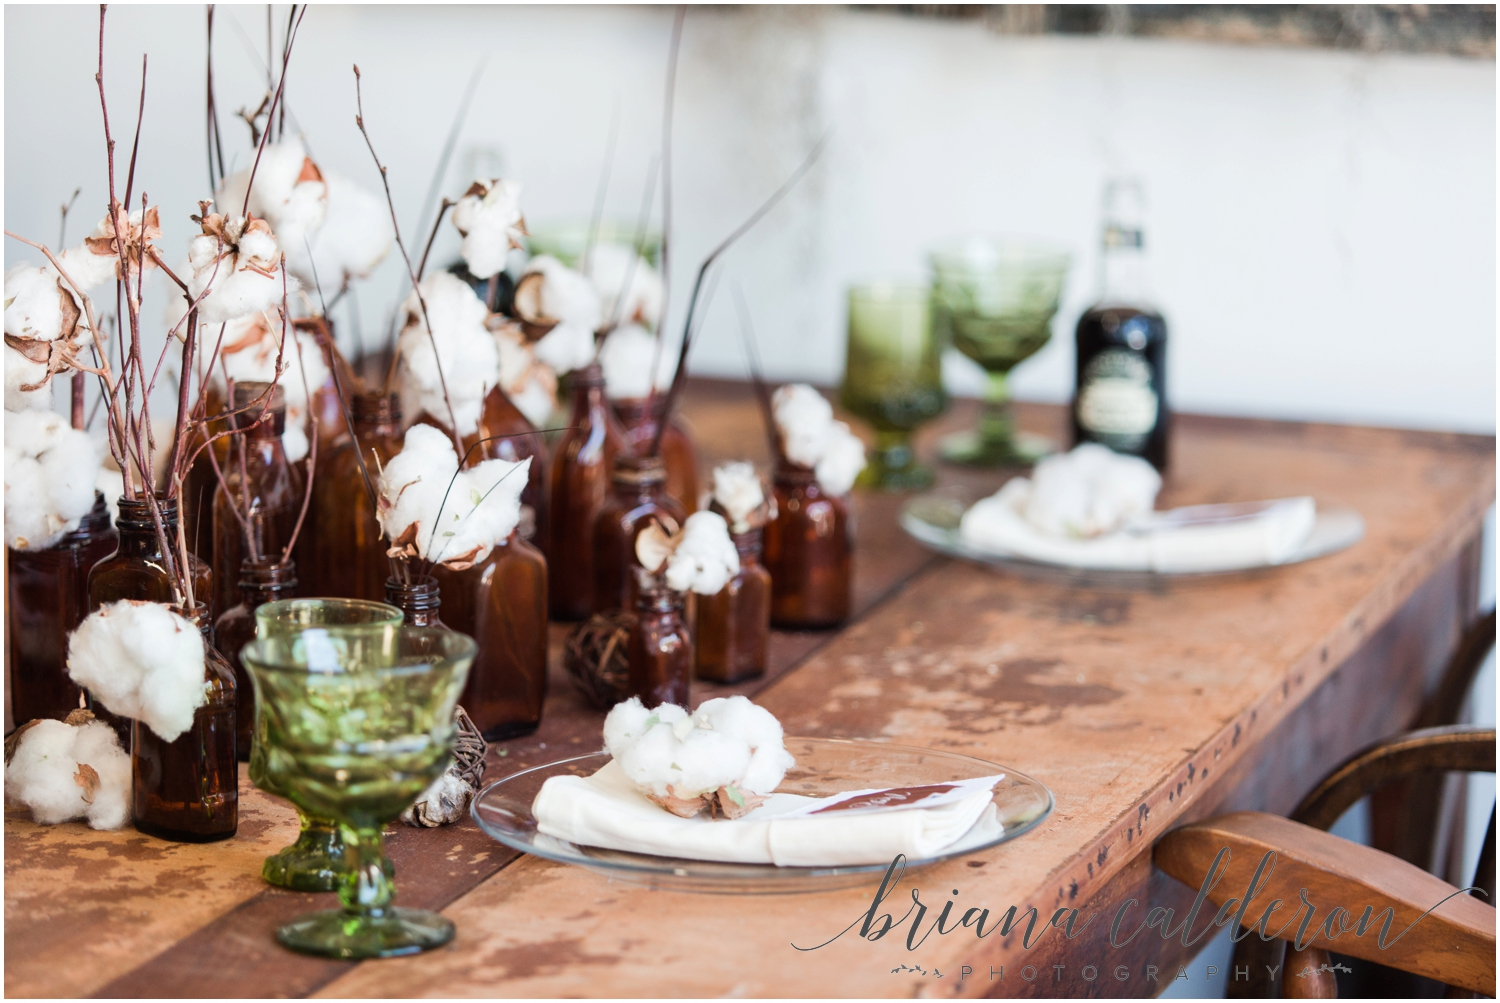 Seventh Heaven Vintage Rental styled shoot. Photos by Briana Calderon Photography_0774.jpg